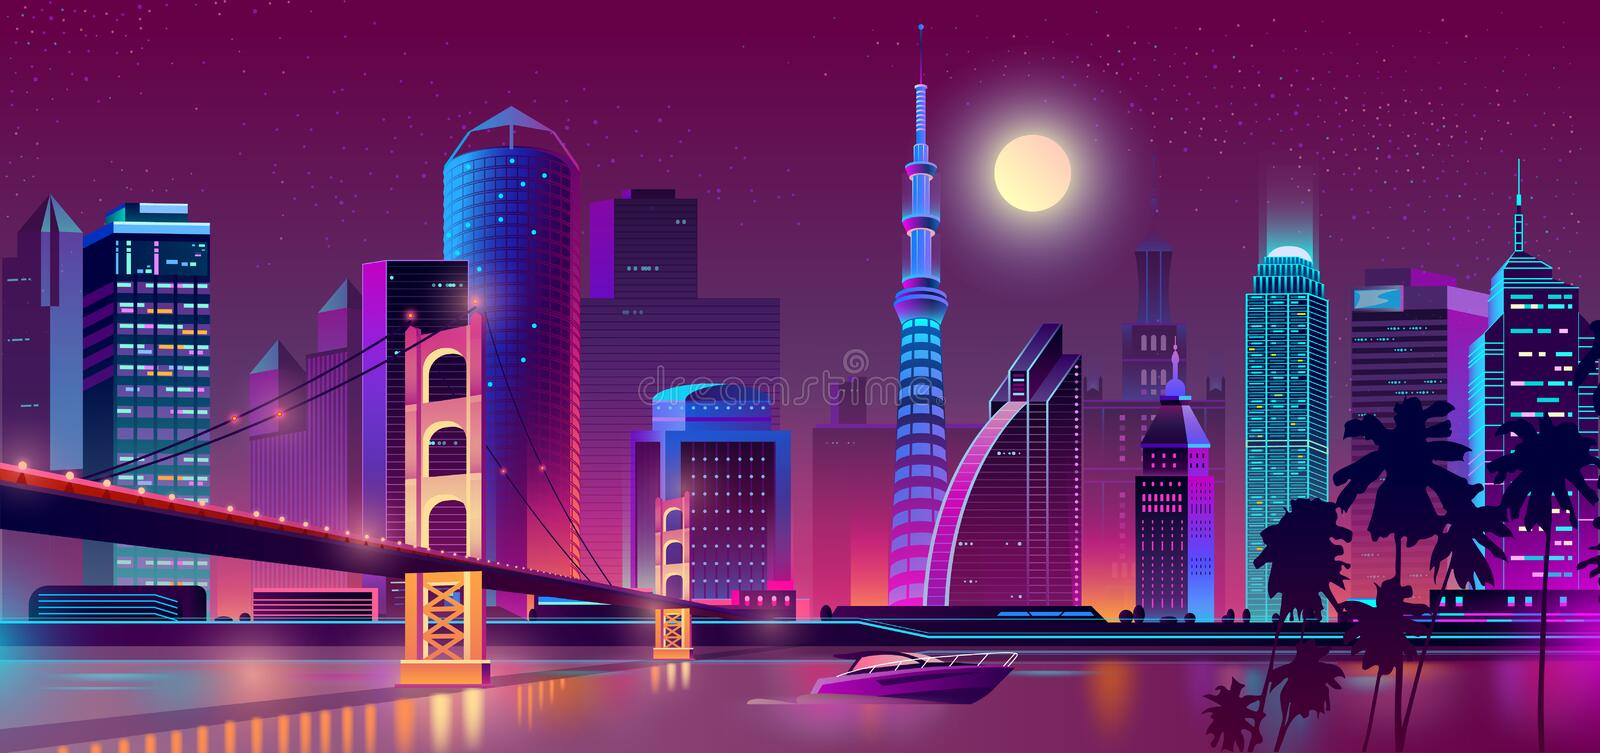 Vector background with night city in neon lights. Vector concept background with night city illuminated with neon glowing lights. Cityscape in violet colors royalty free illustration